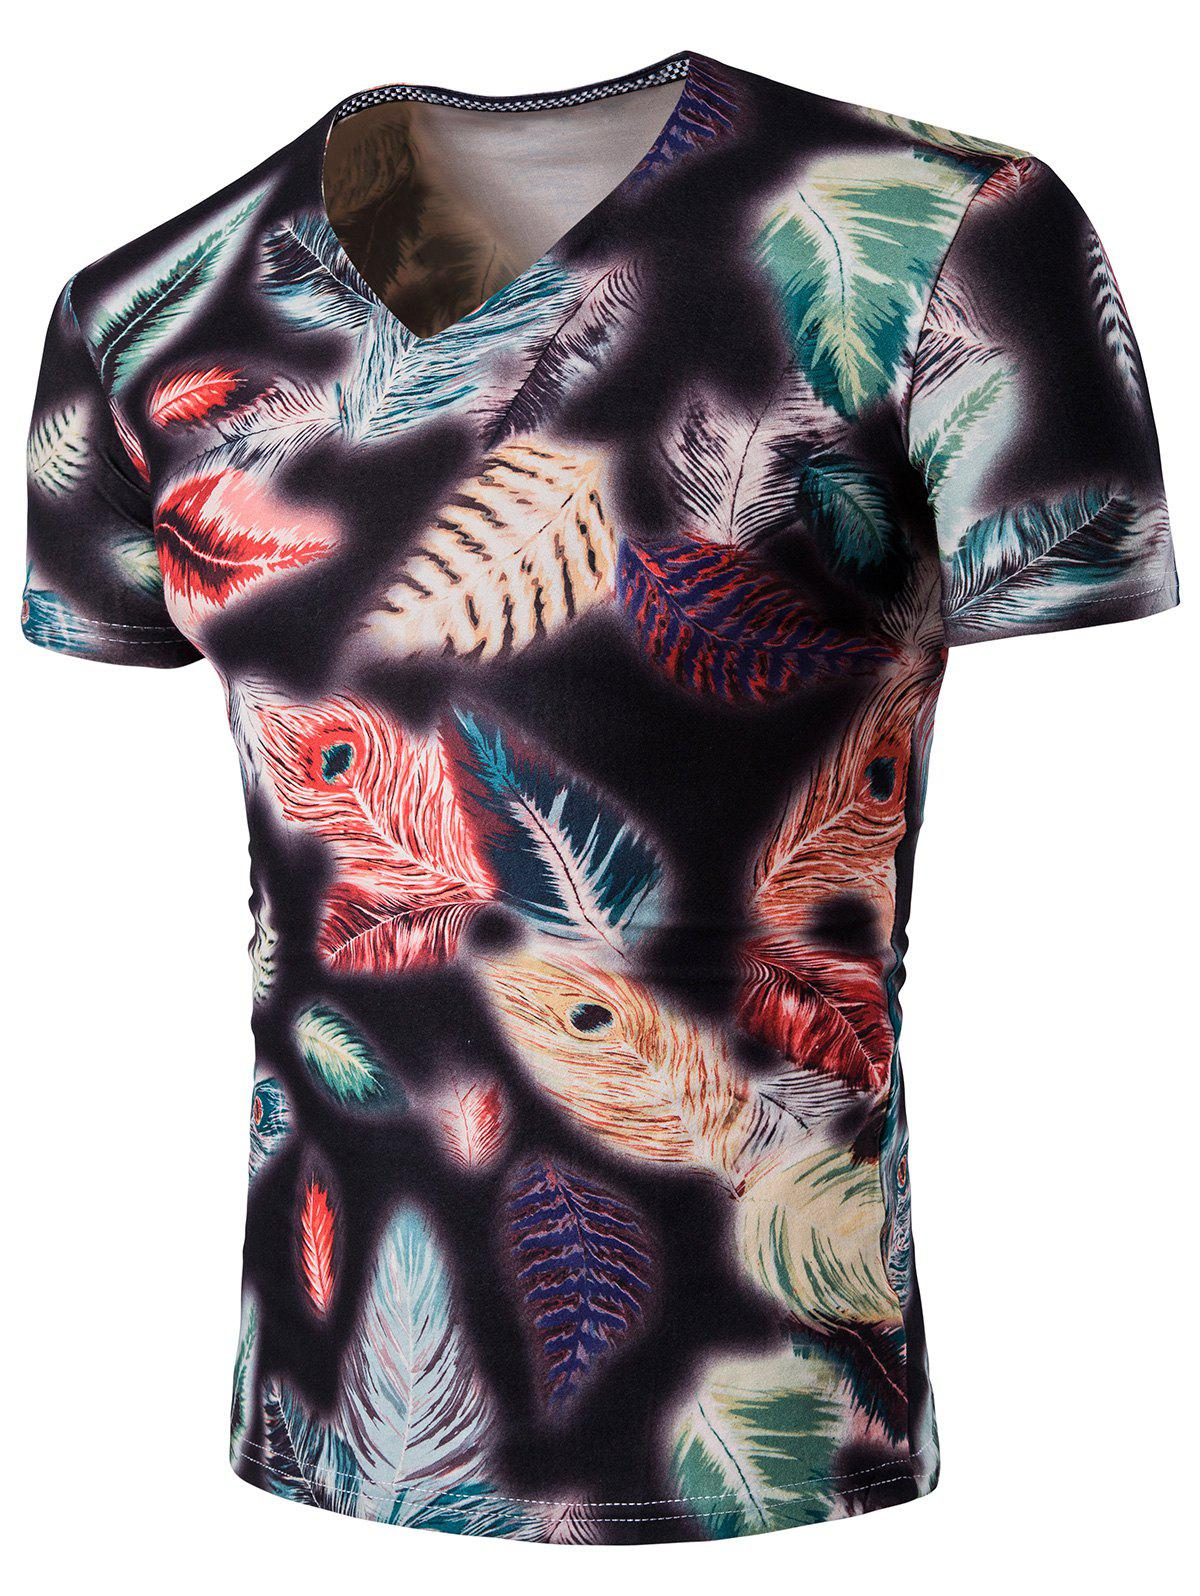 Feather Imprimer V Neck T-Shirt - multicolorcolore 2XL